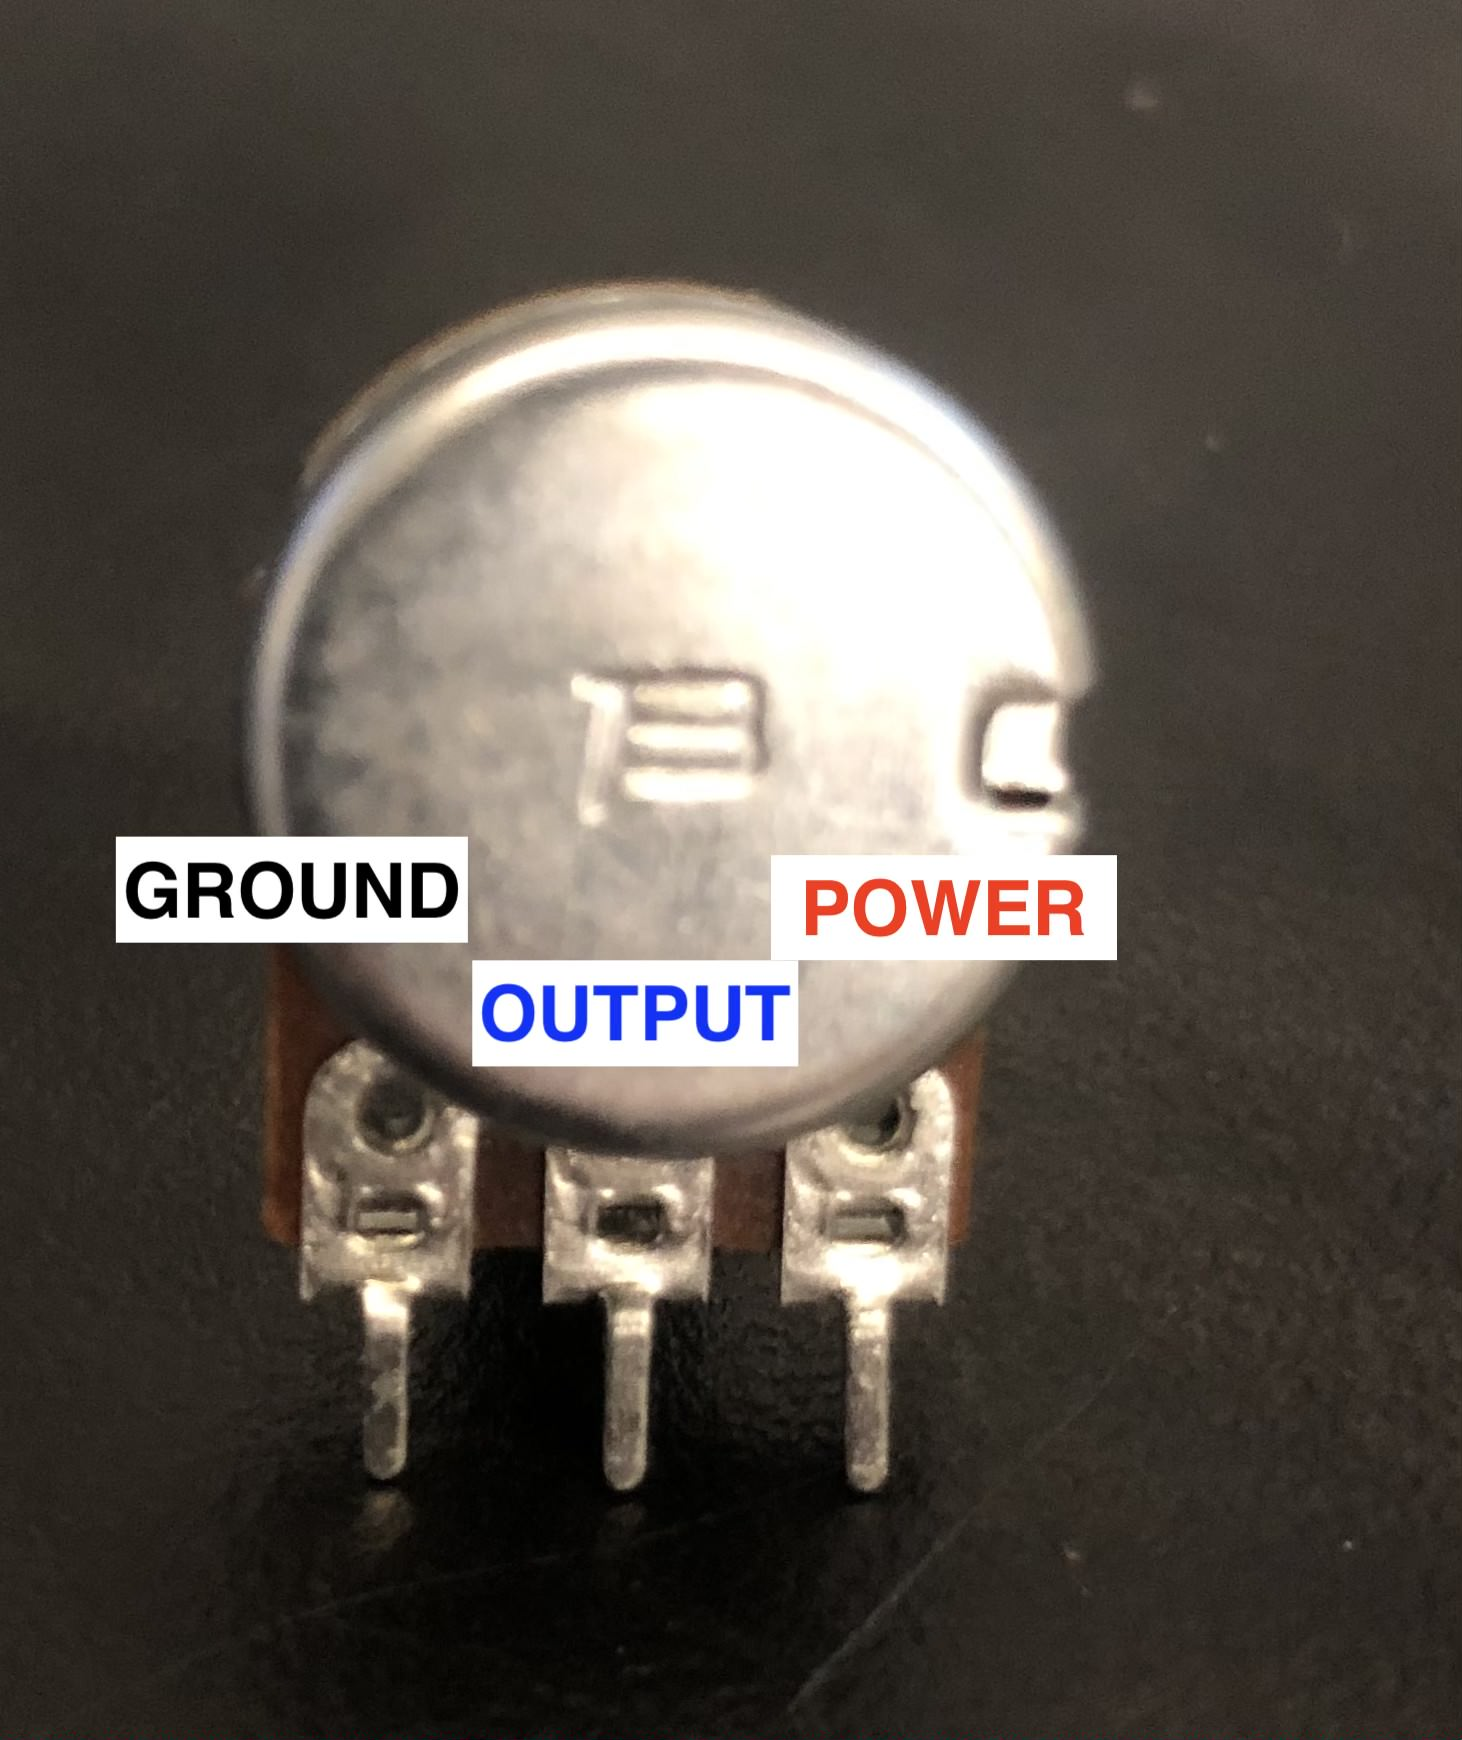 a diagram of a potentiometer with three pins: from left to right, ground, output, and power